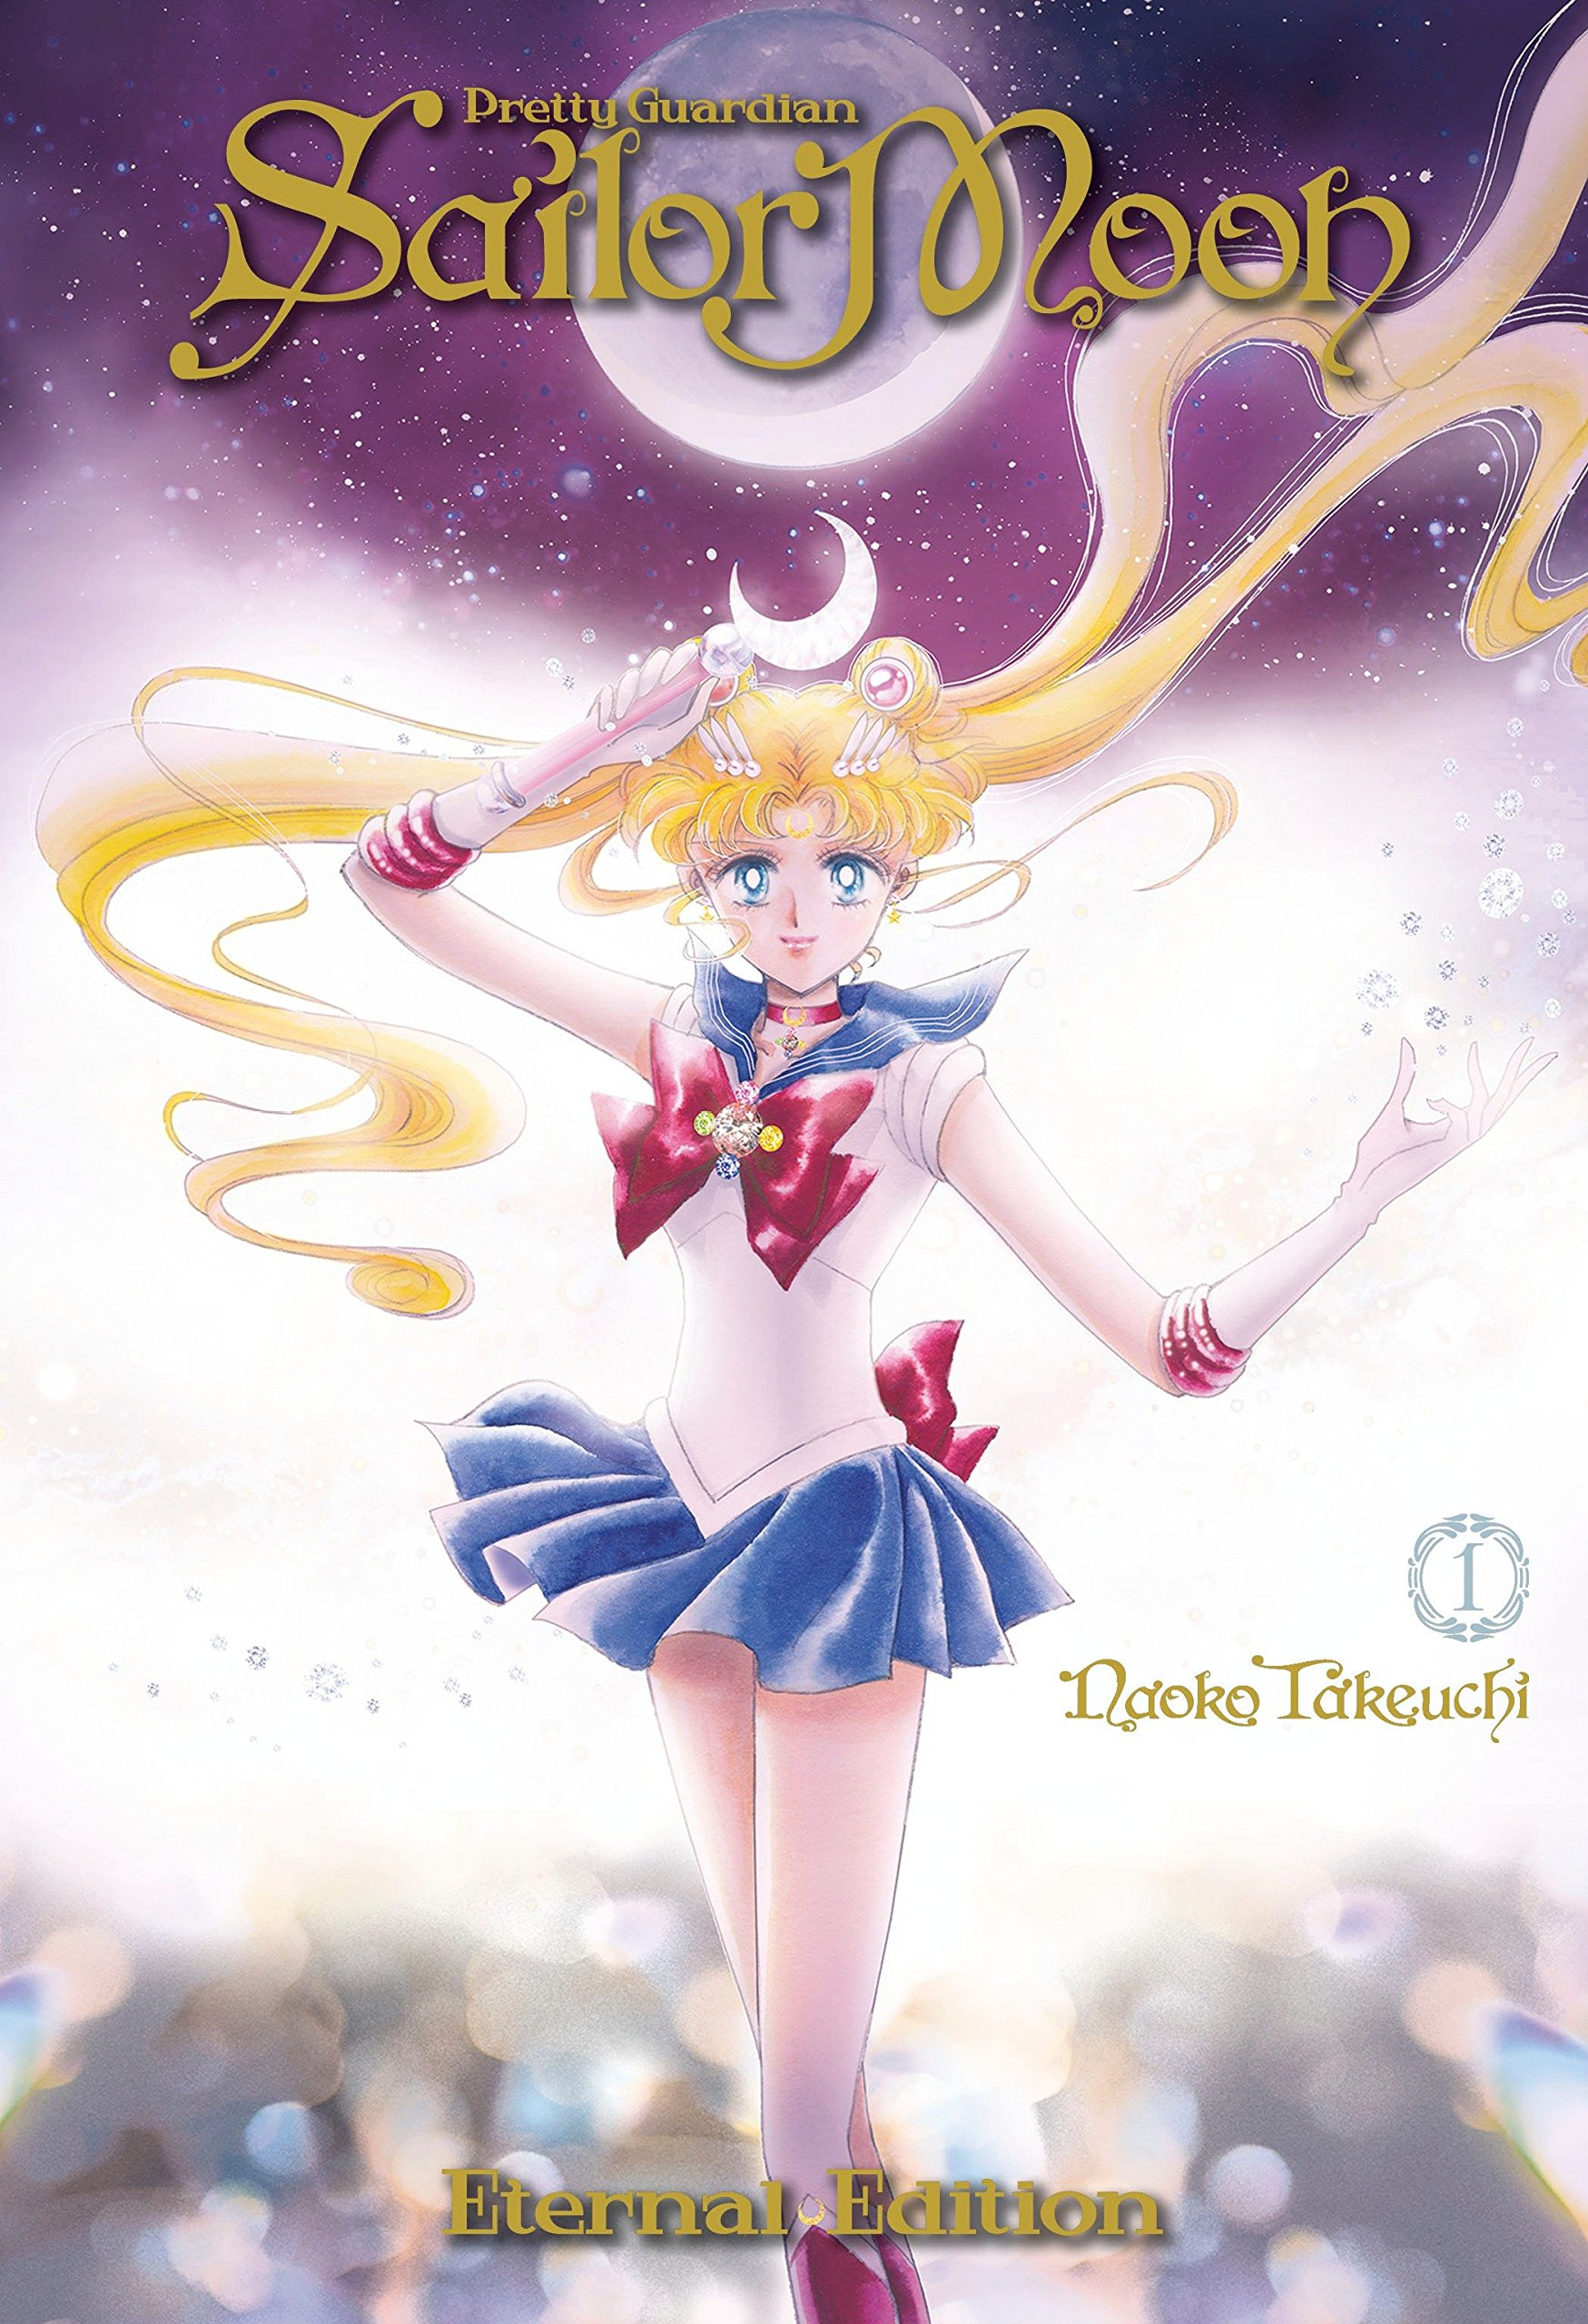 Usagi and the Sailor Guardians are back in a reprinted edition of the manga classic.